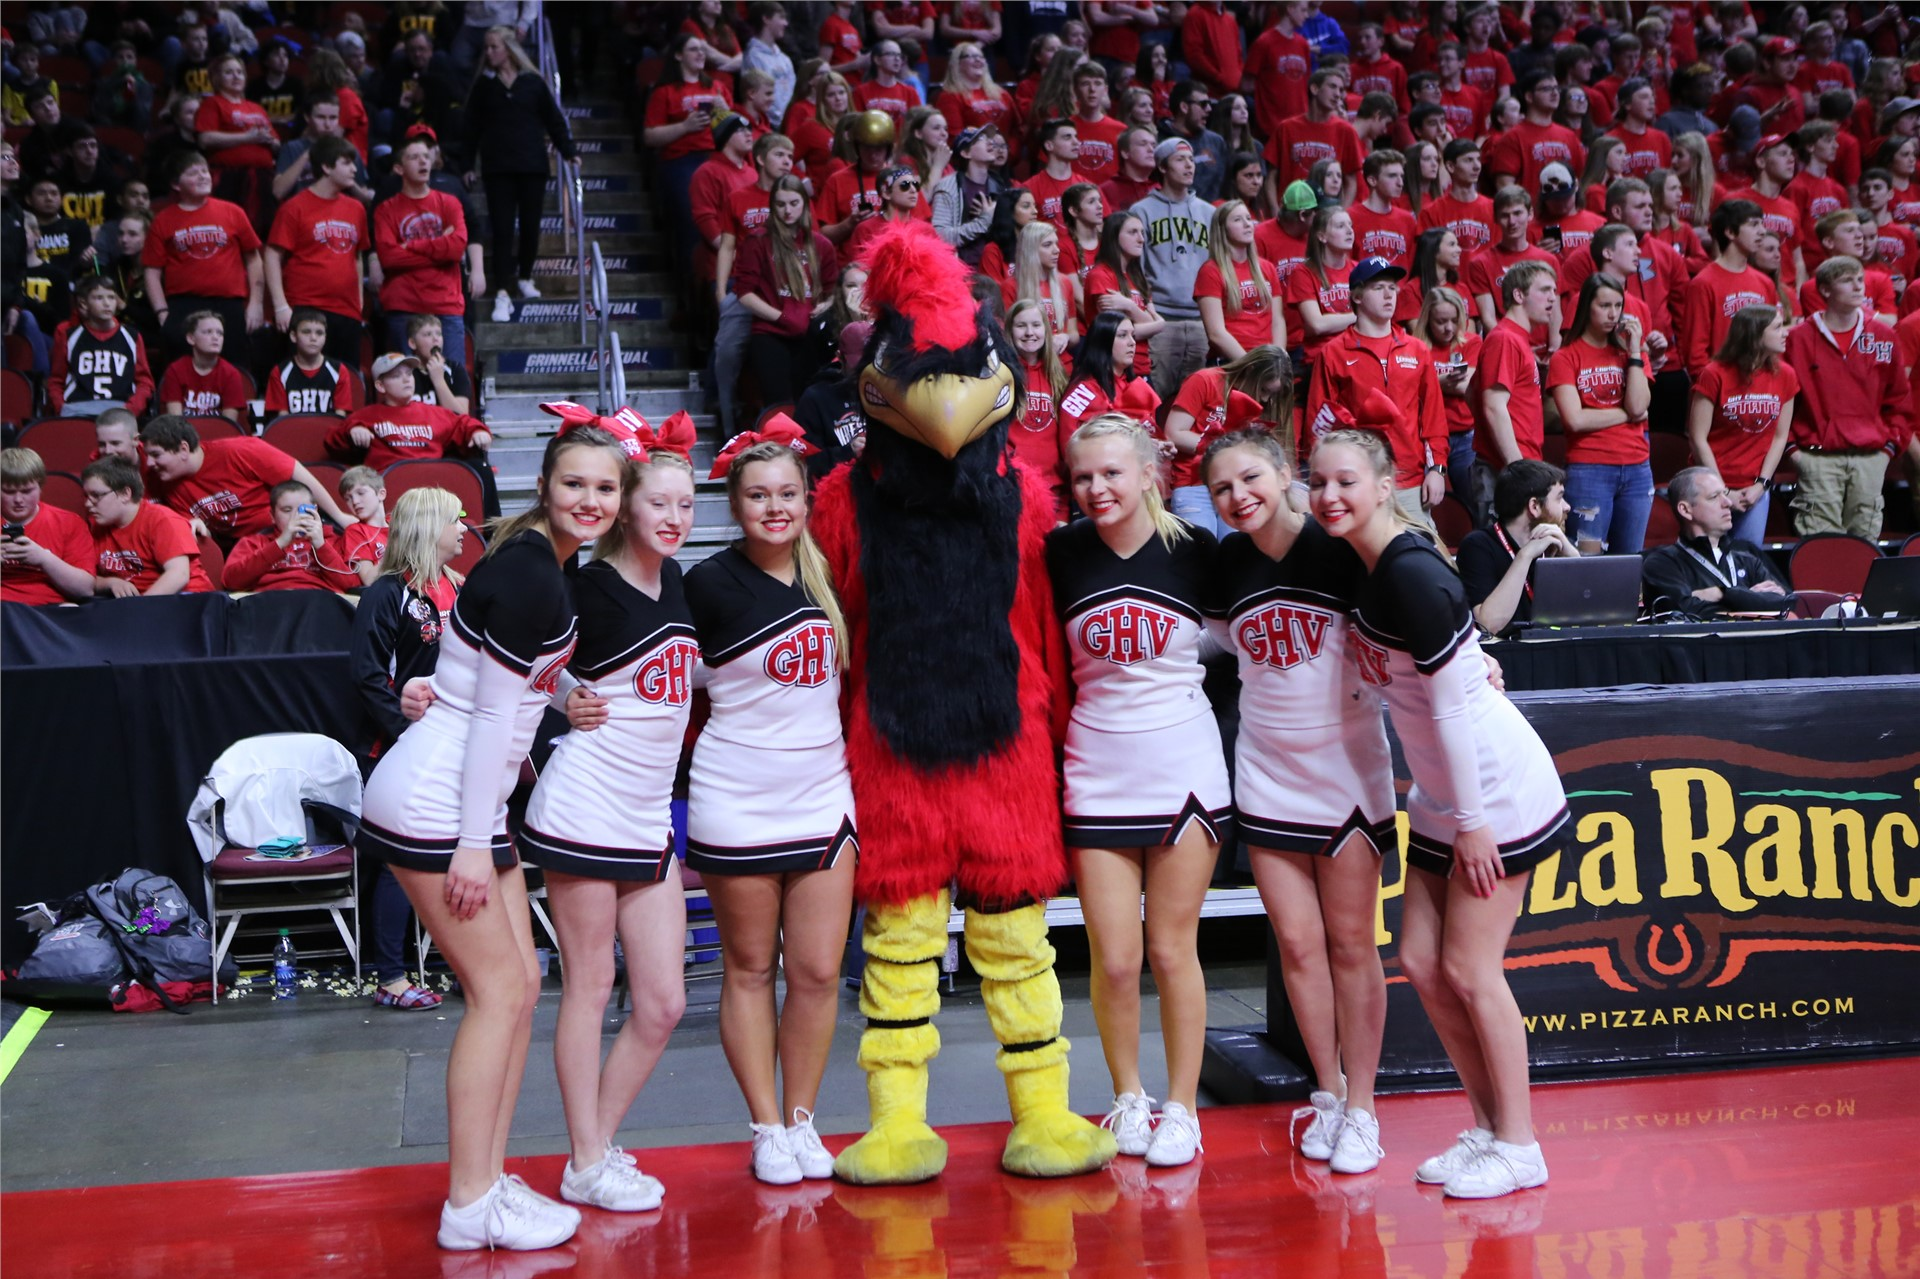 Cheerleaders posing with Cardinal mascot